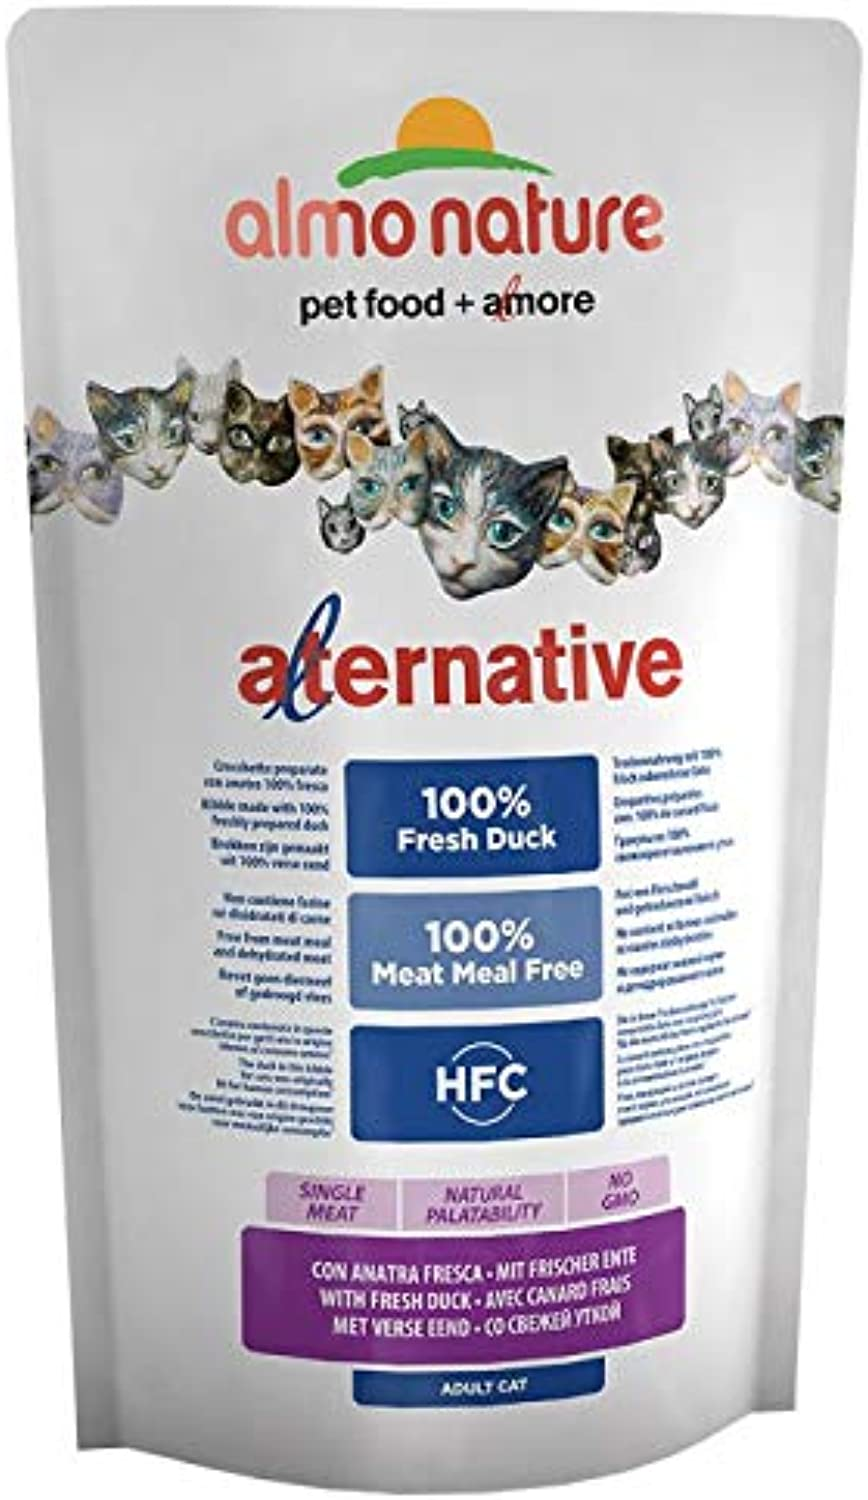 Almo Natura HFC Alternative Premium Dry Food for Adulti Cats with Fresh Duck Economy Pack 3x 2 kg